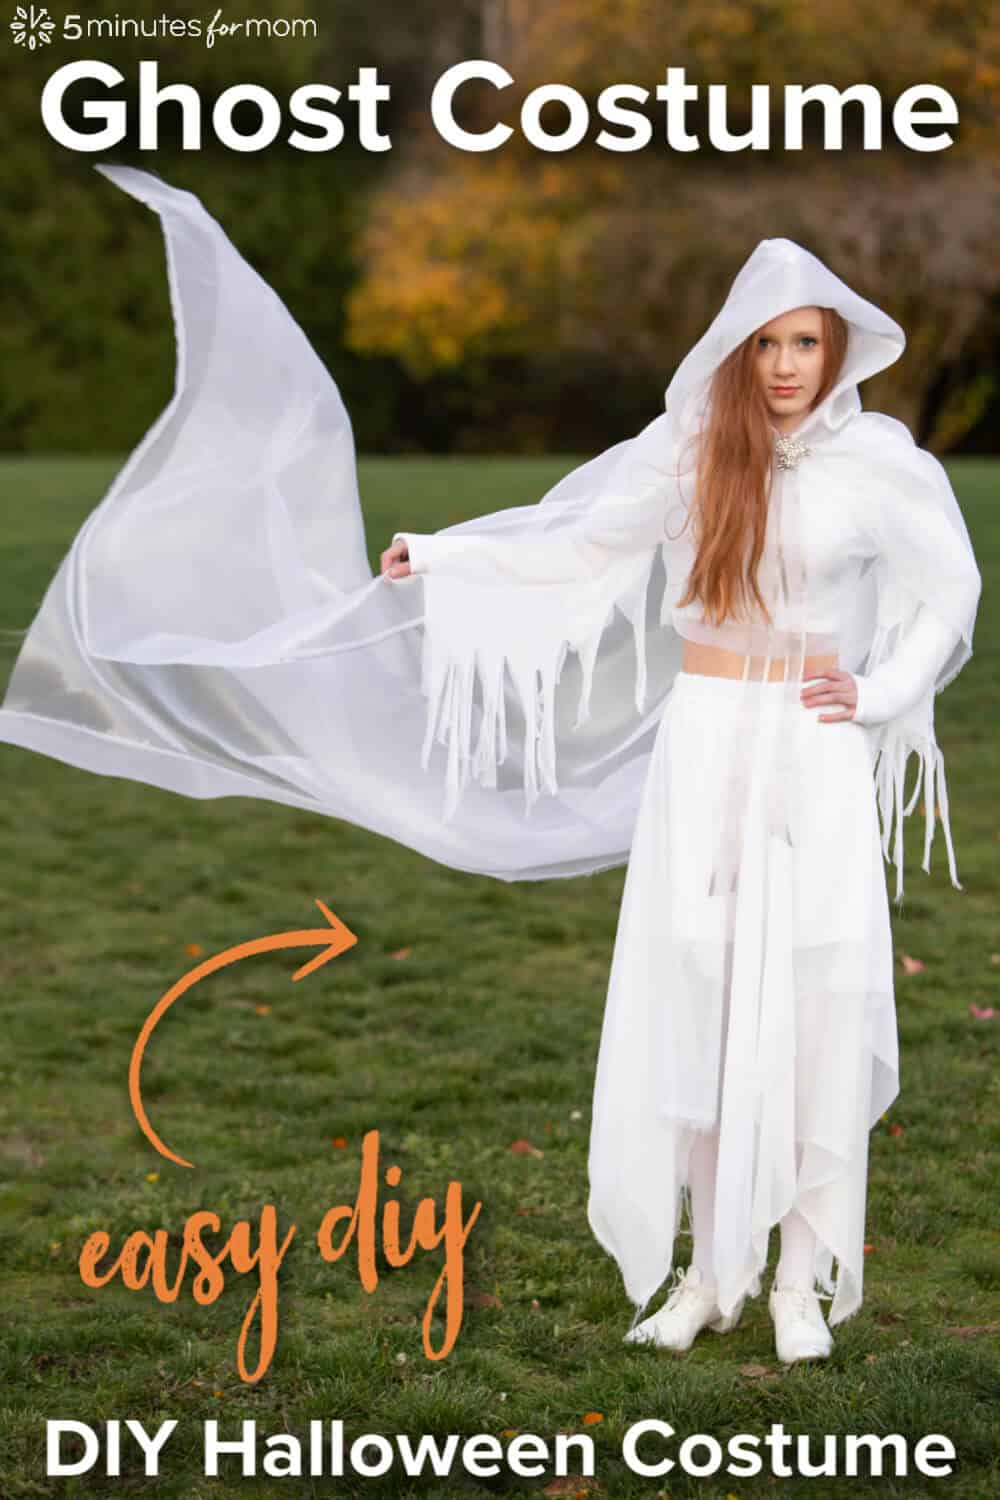 DIY Ghost Costume - How To Make A Stunning Ghost Halloween Costume